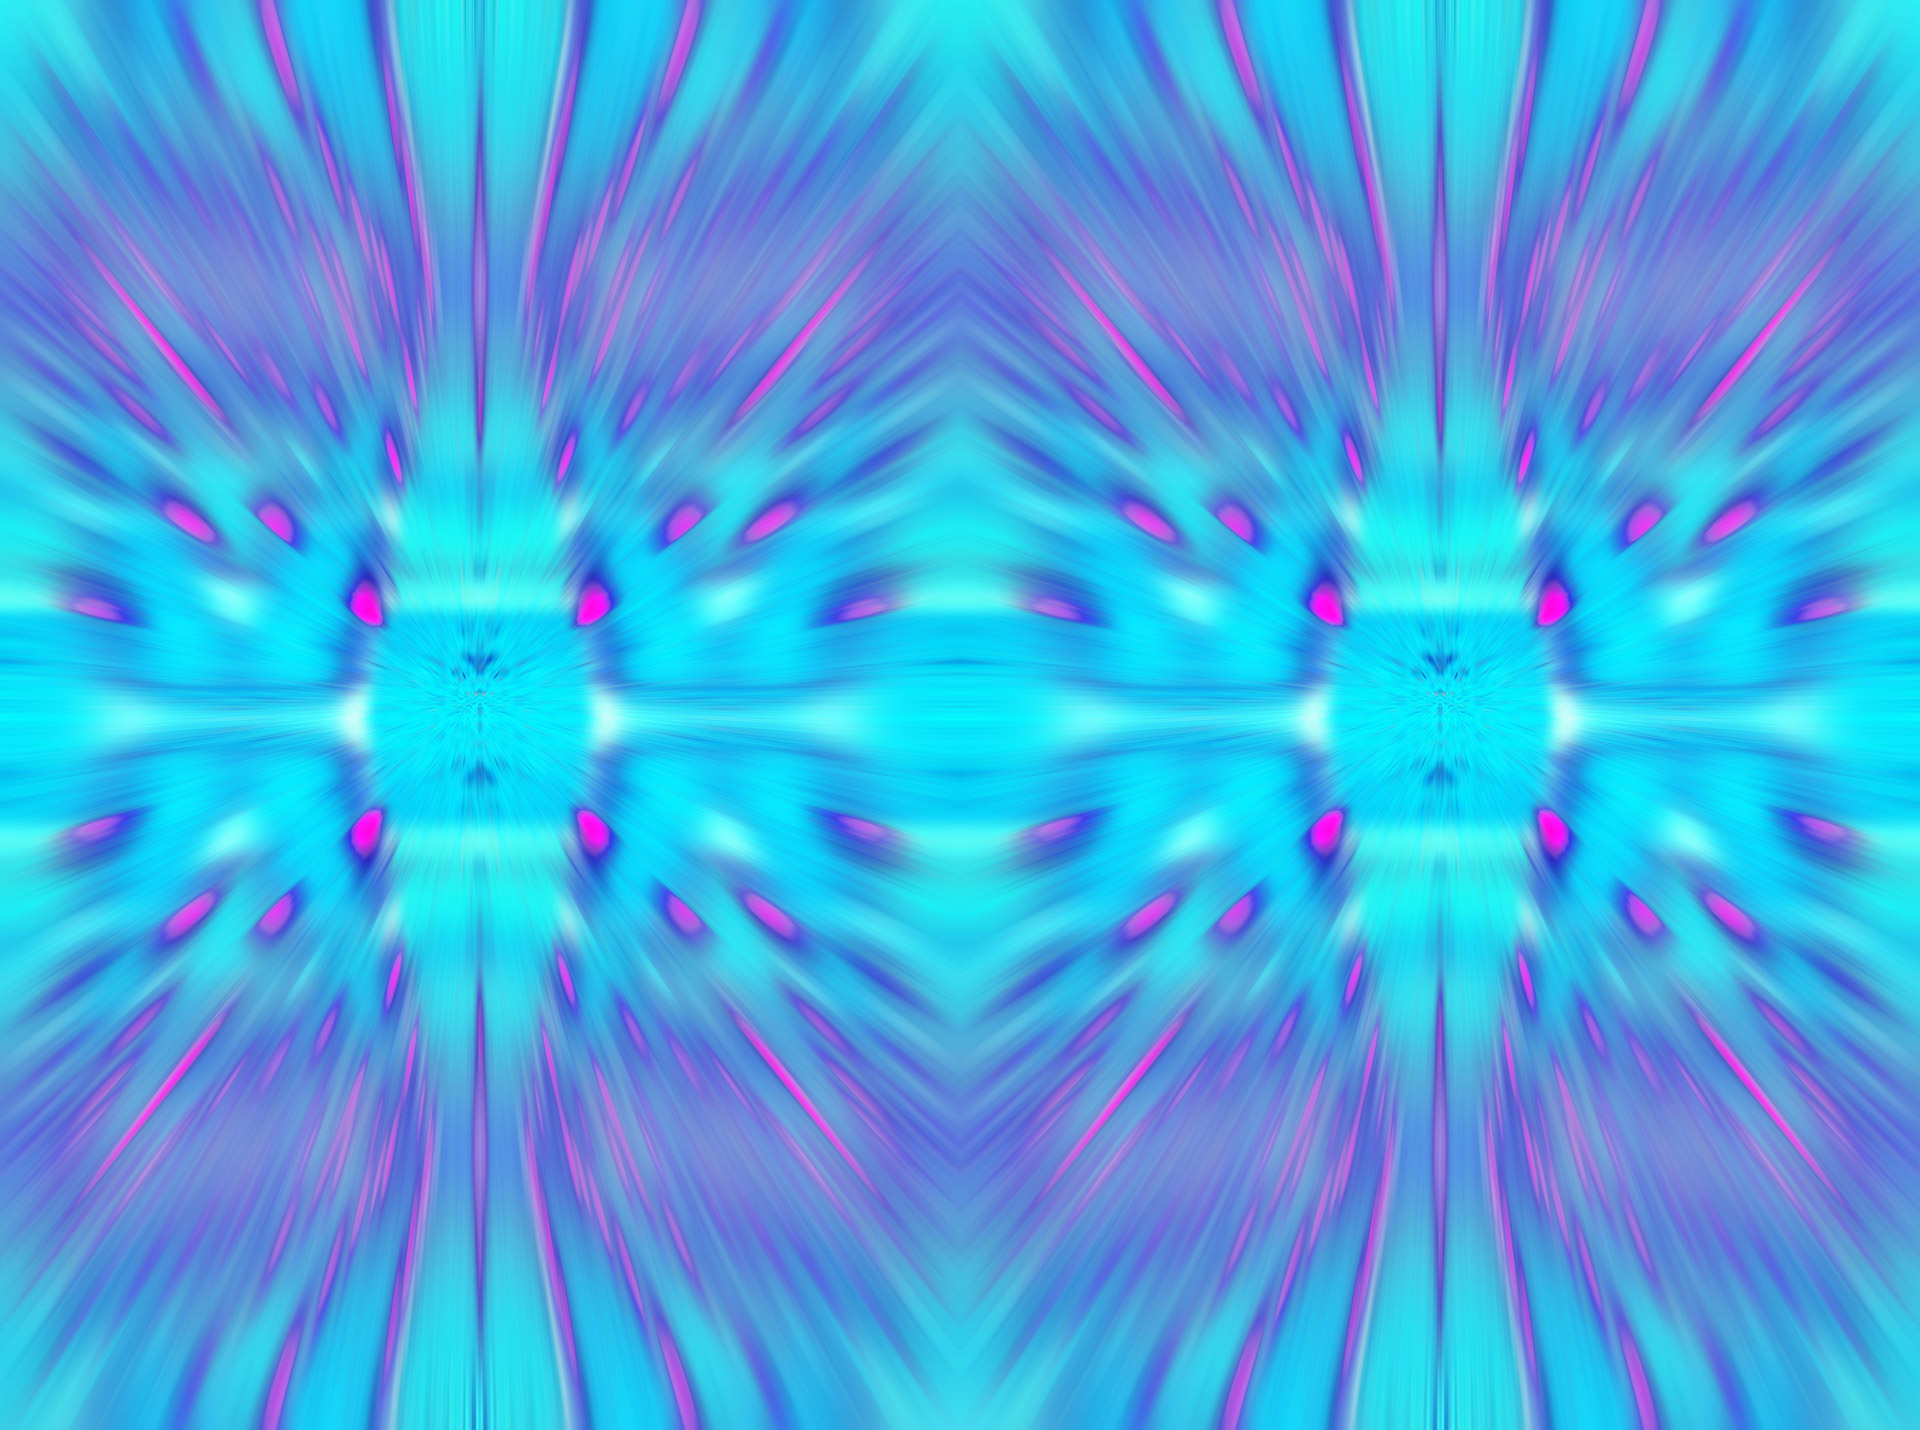 Download Free Photo Of Background Blue Cool Pink Hot From